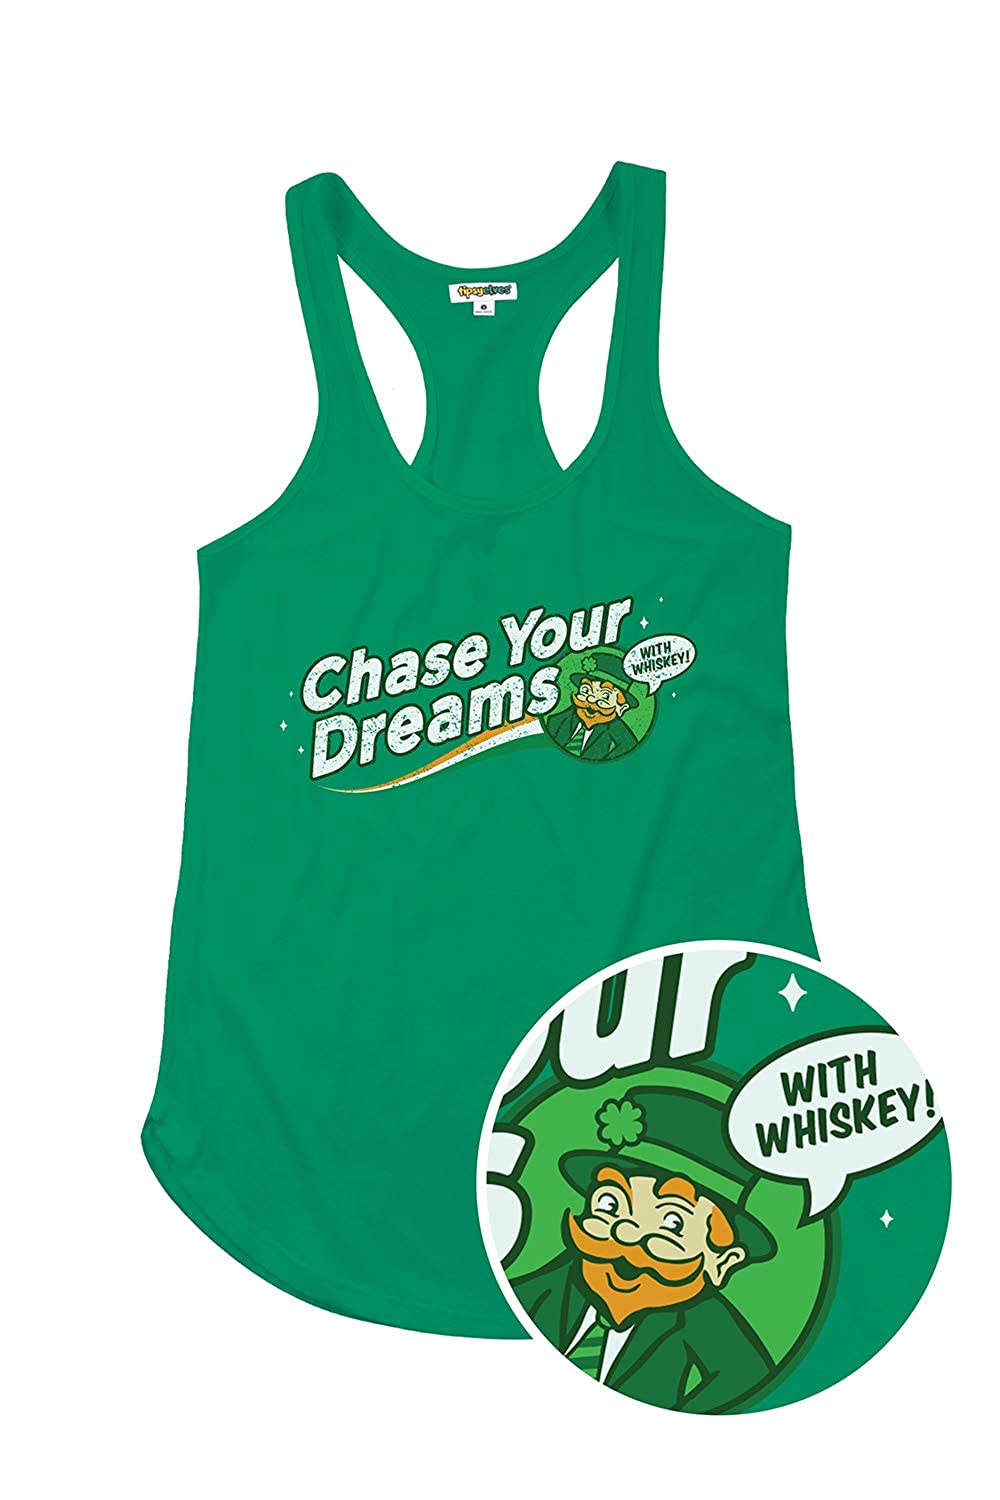 0b26c624665225 Amazon.com  Women s St. Patrick s Day Shirts - St. Paddy s Day Tees for  Ladies  Clothing